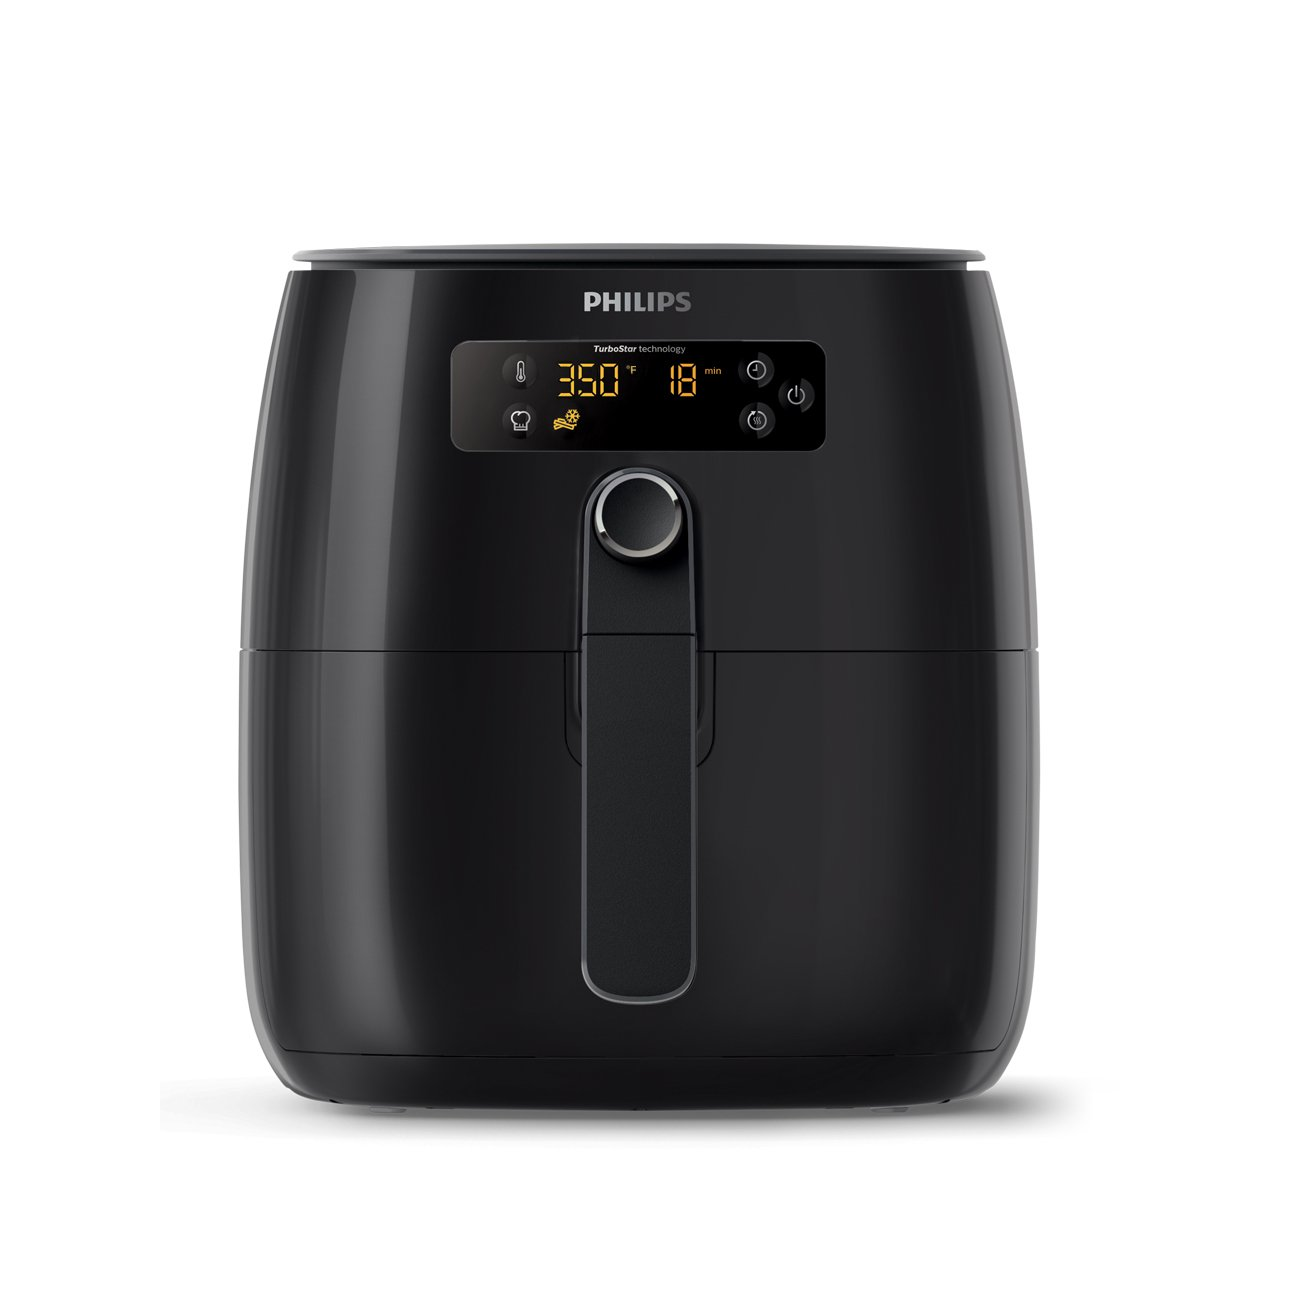 Philips HD9641/96 Avance Digital Turbostar Airfryer (1.8lb/2.75qt), Black